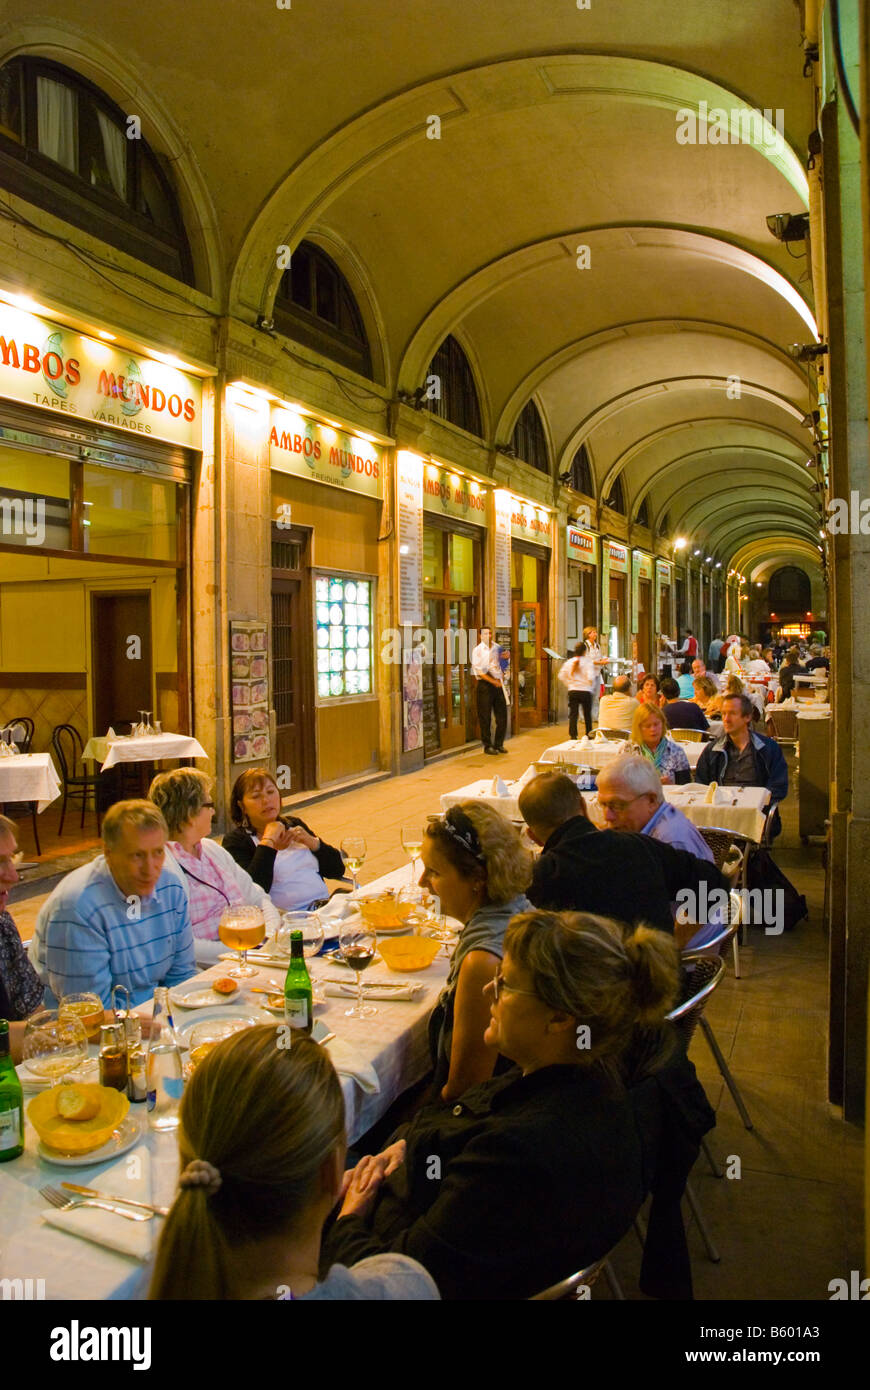 Restaurants at Placa Reial square in Barri Gotic district of Barcelona Spain Europe - Stock Image